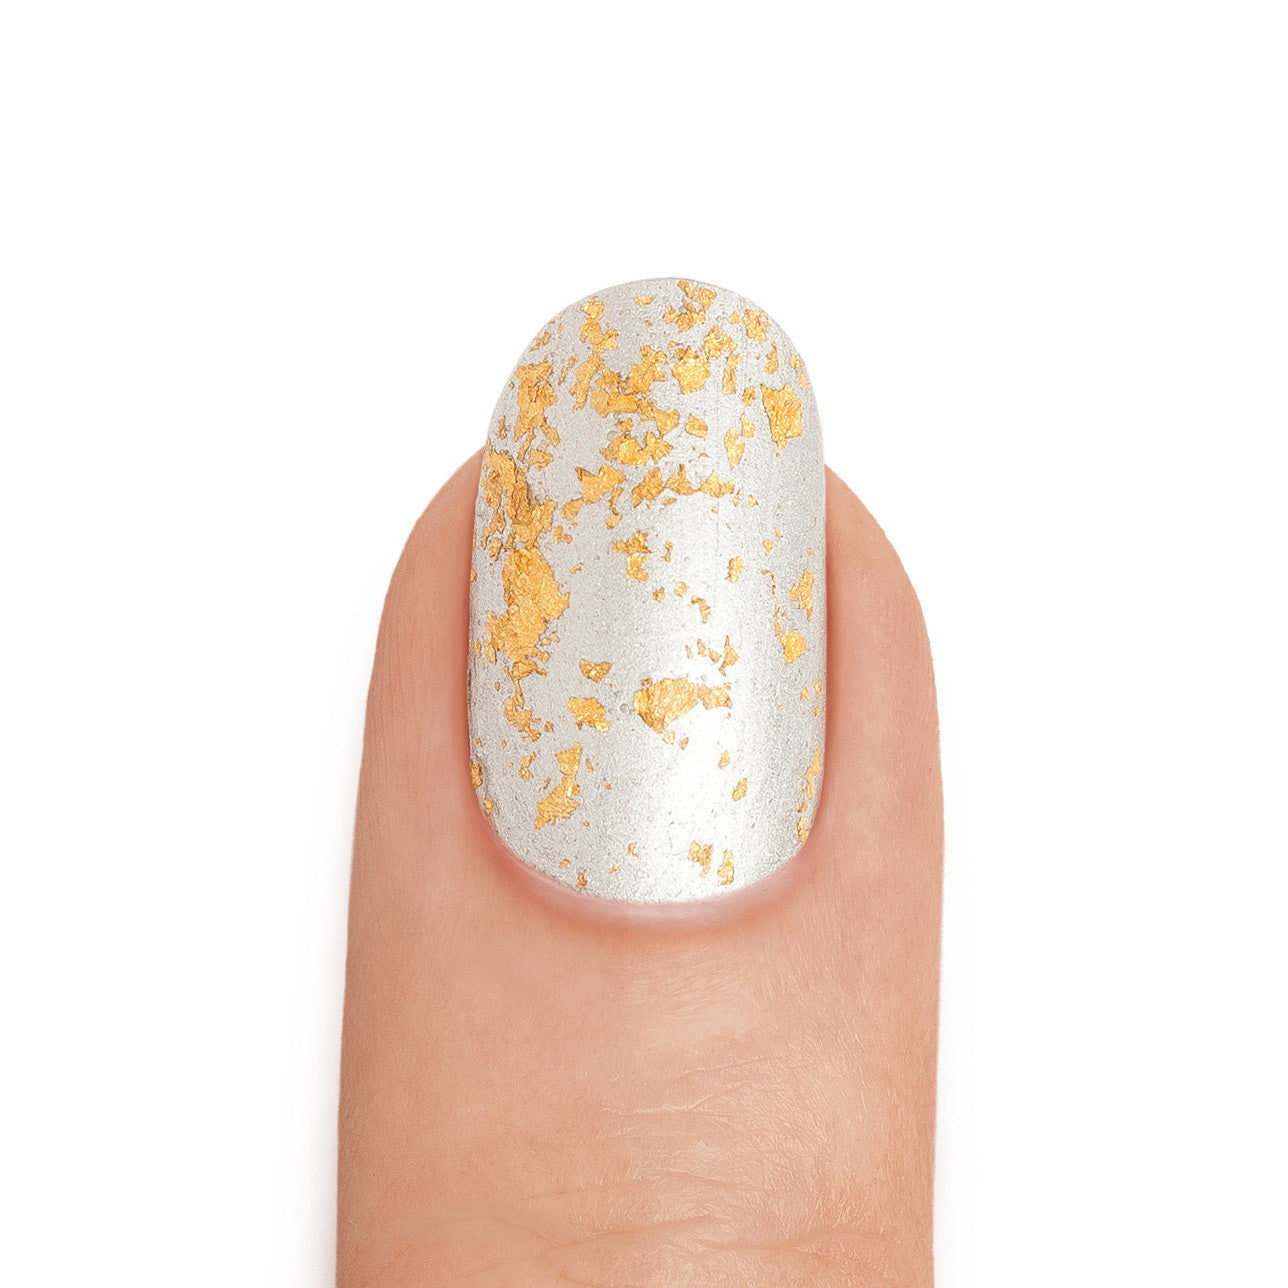 Real Silver Nail Polish with 24K Gold Leaf Top Coat - MINE Luxury Nail Lacquer